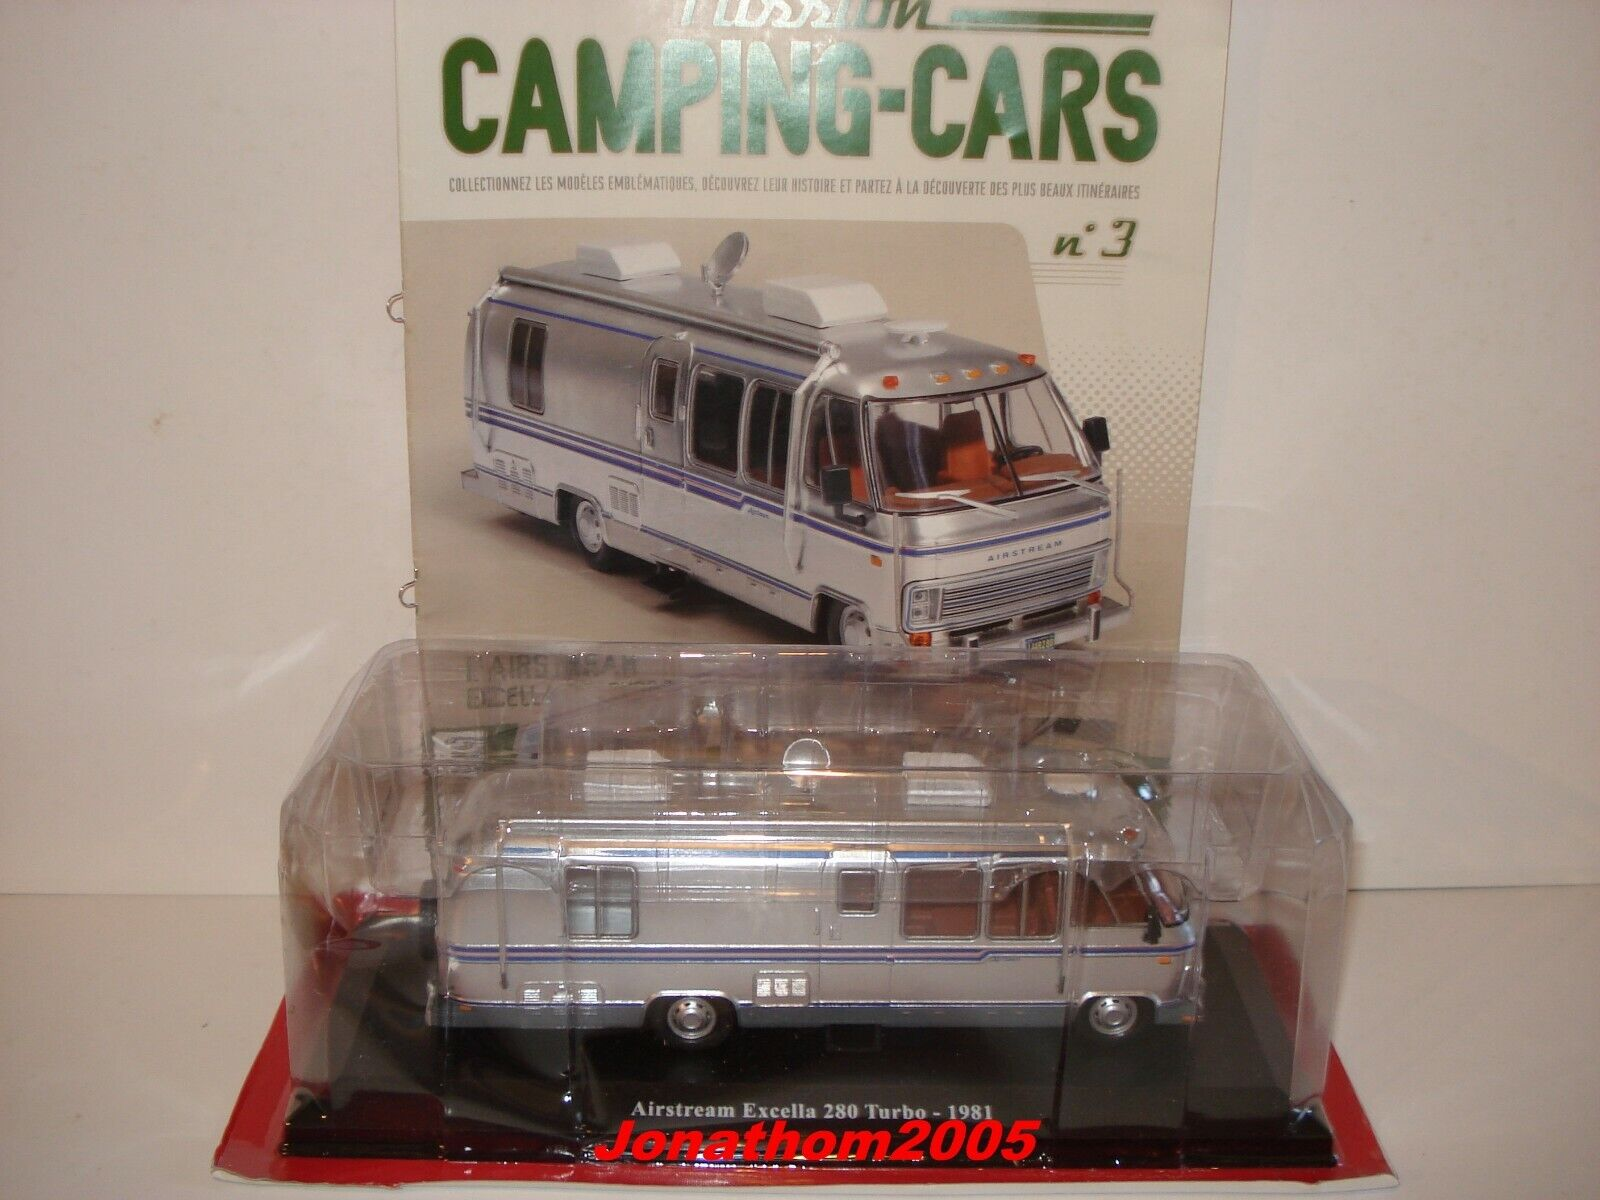 PASSION CAMPING CARS - AIRSTREAM EXCELLED 280 TURBO - USA 1981 au 1 43°